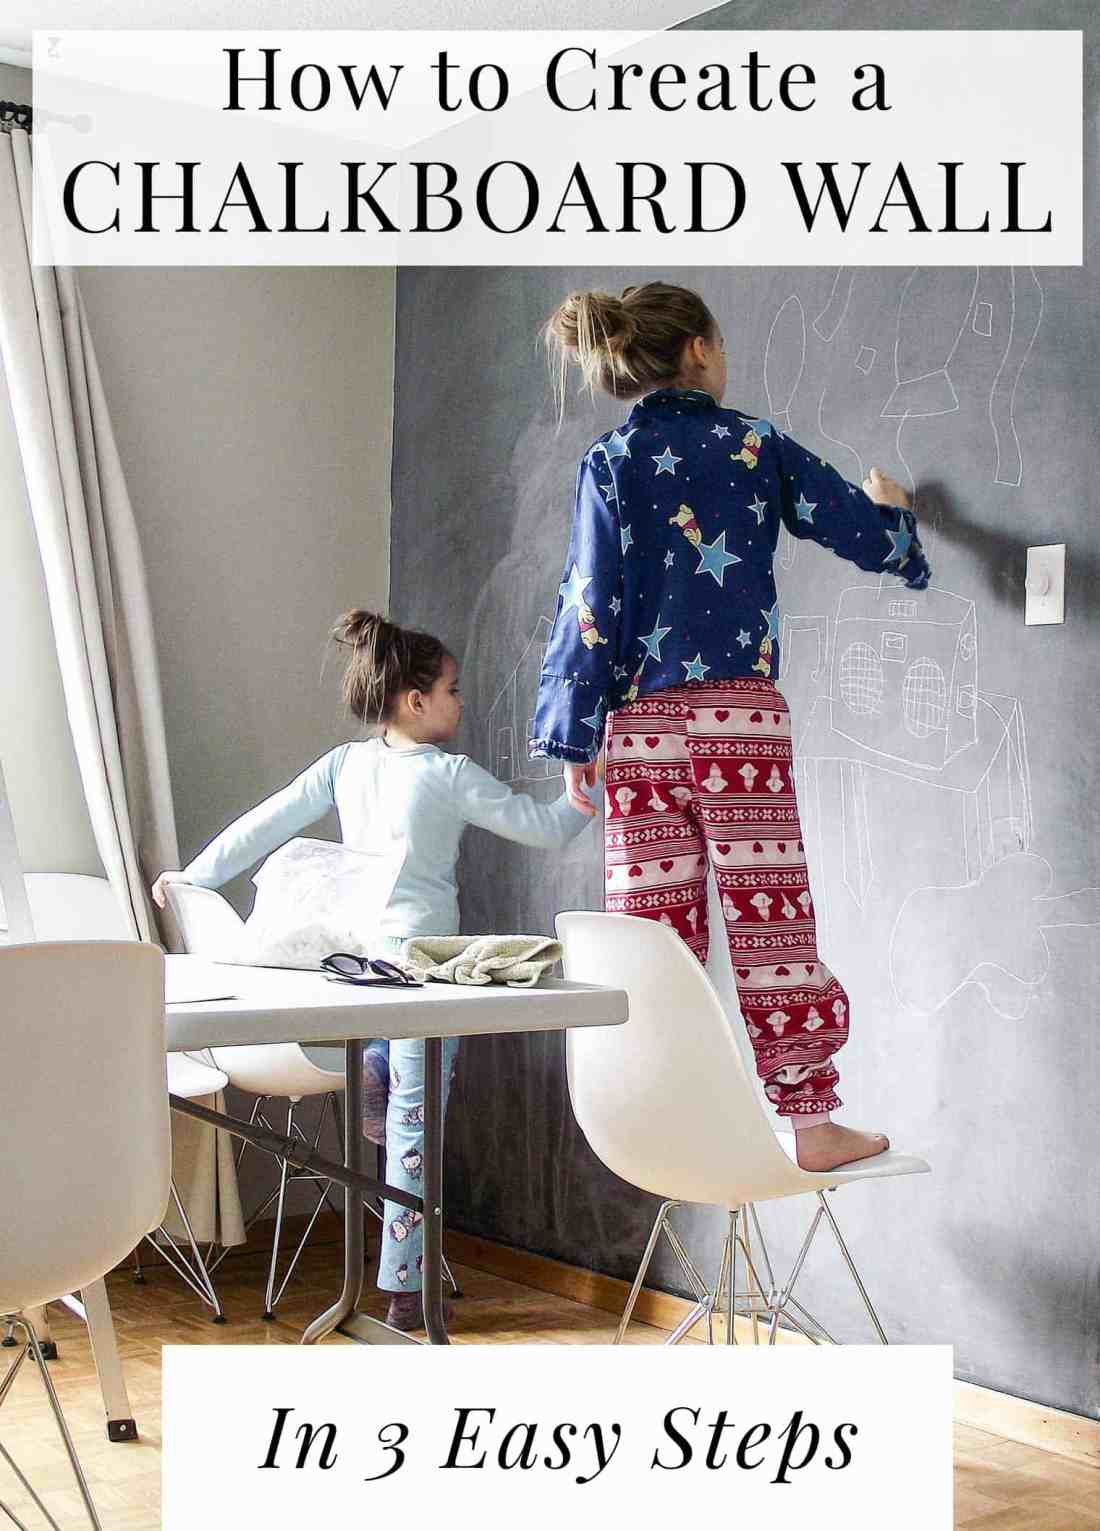 two girls in pajamas drawing on a chalkboard wall